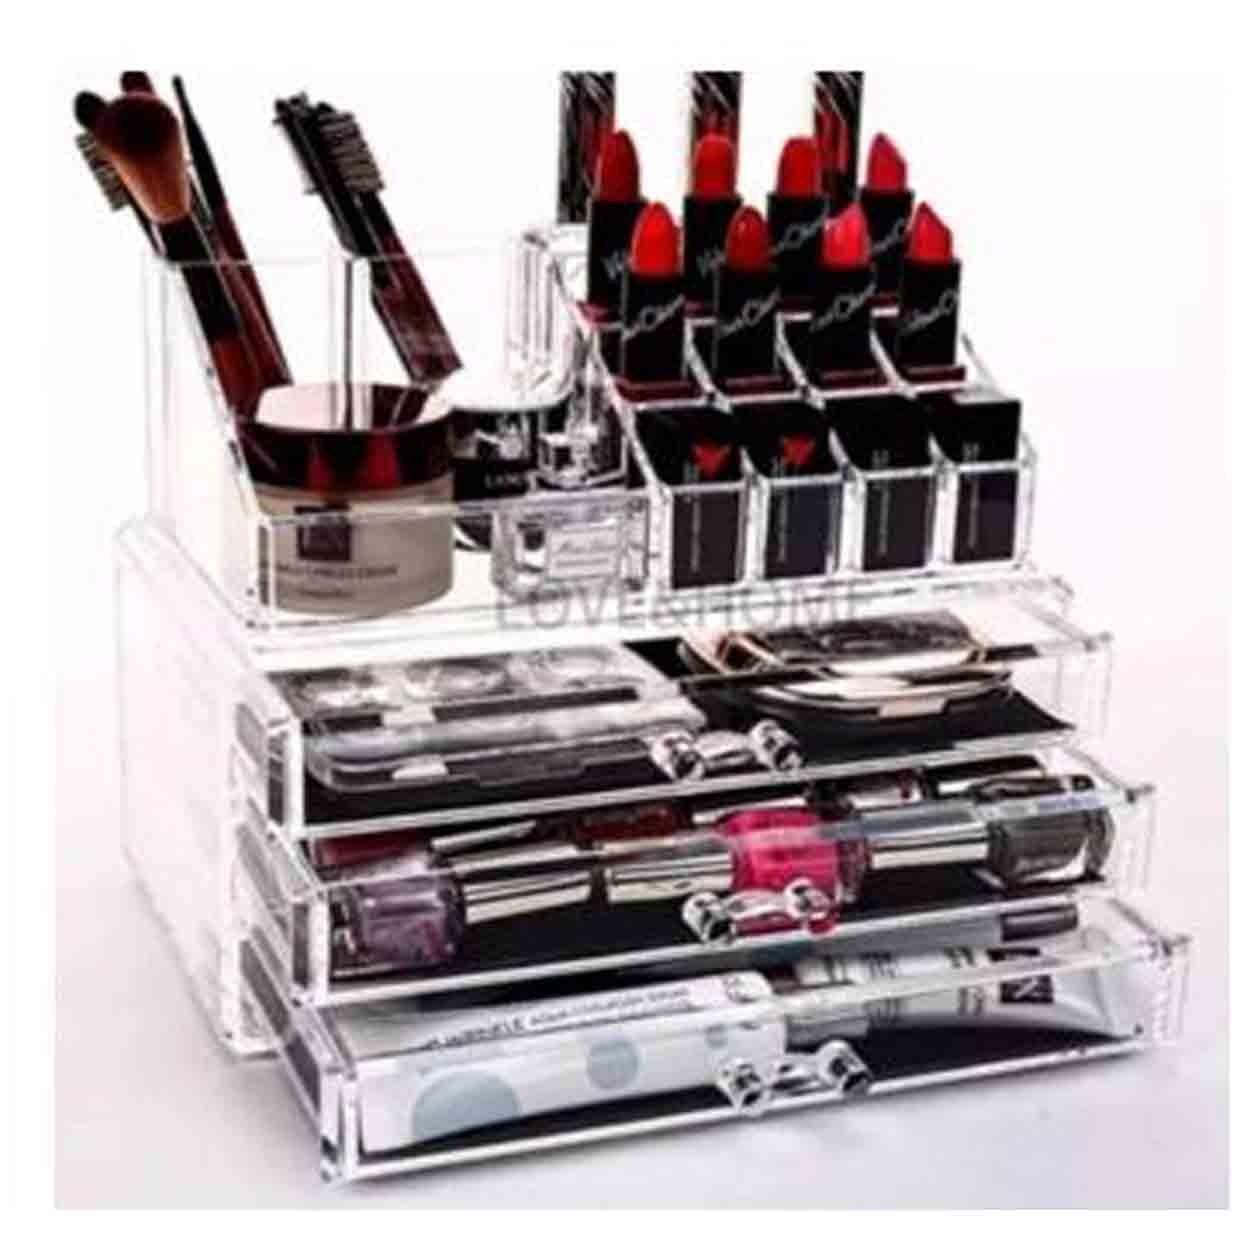 3 Layers Clear Acrylic Cosmetic Drawers Makeup Jewelry Storage Display Organizer Box Lipstick Holder Stand Make up Brush Eyeshadow Nail Polish Case Container Philippines